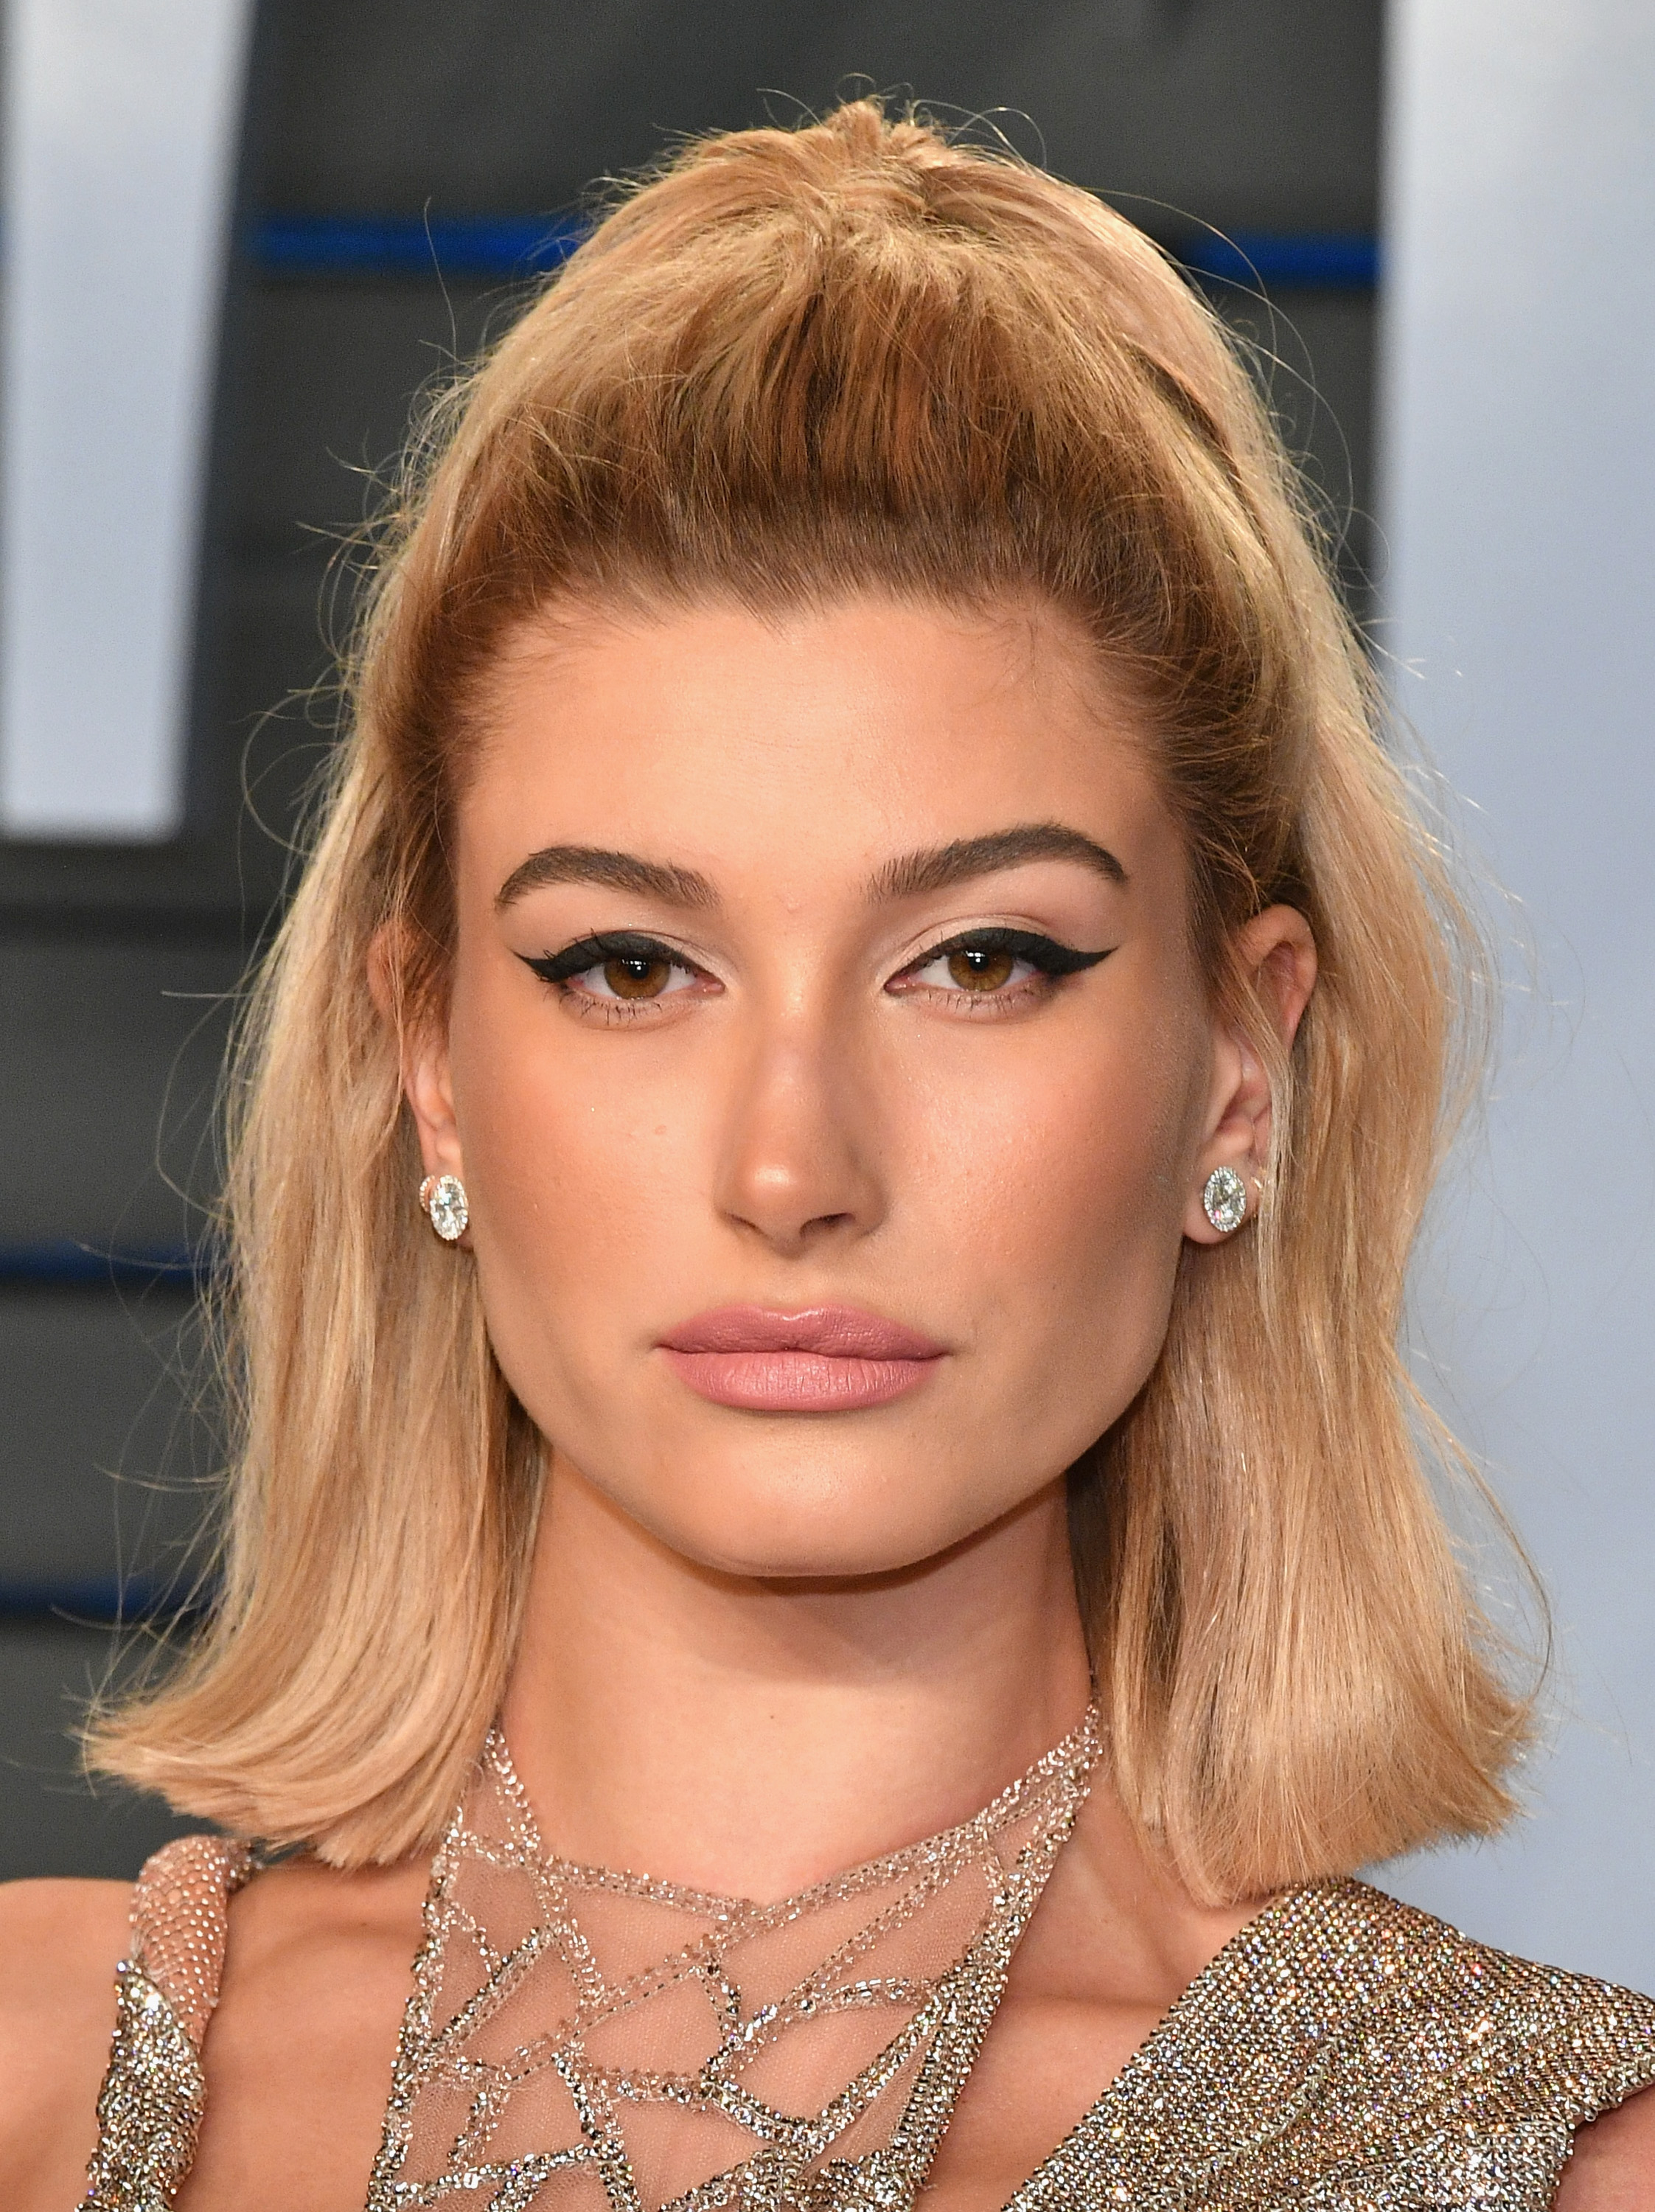 Hailey Baldwin beauty